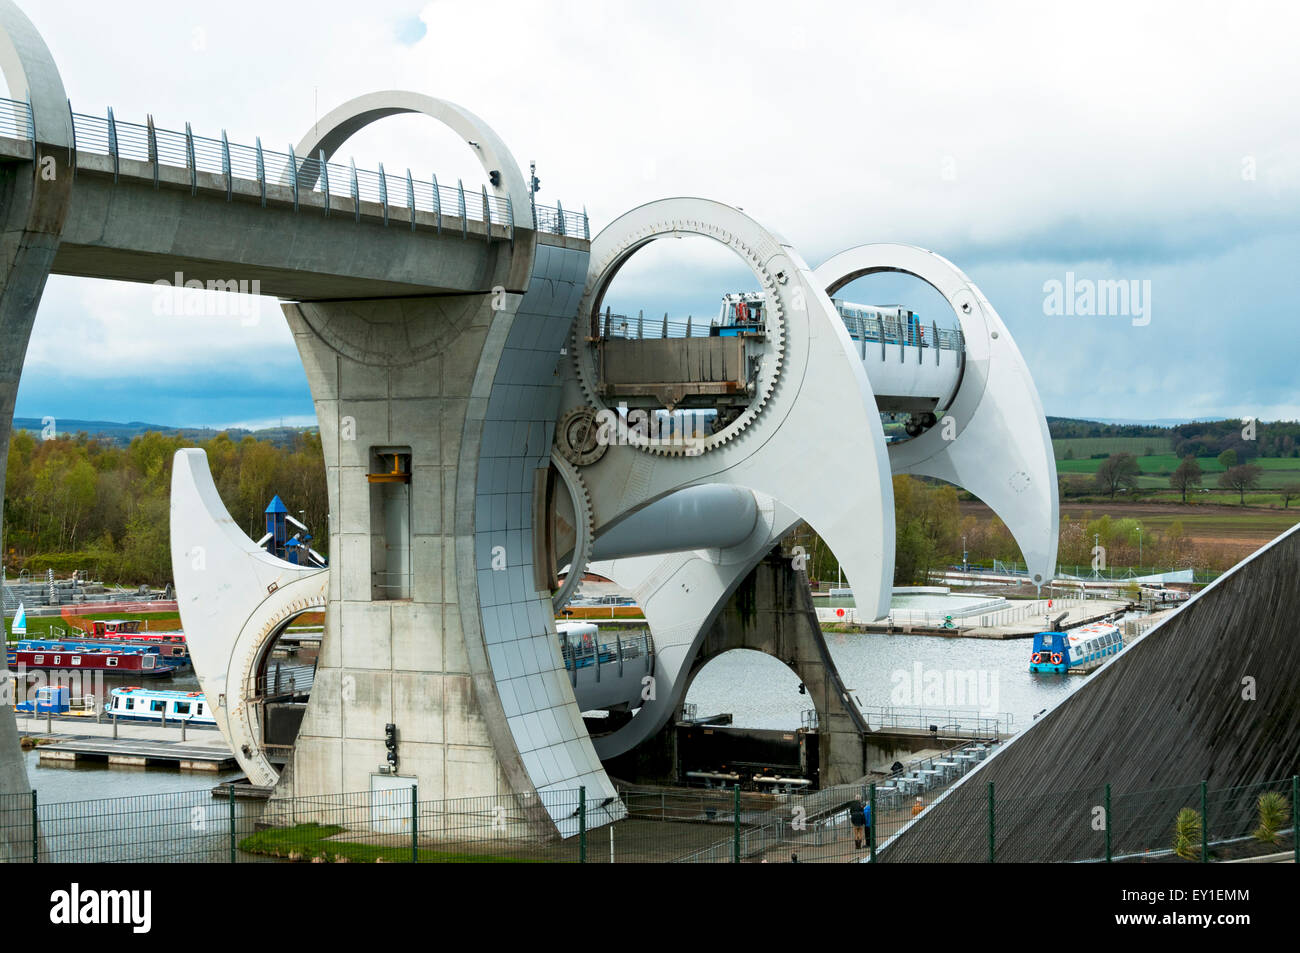 The Falkirk Wheel, the world's first and only rotating boat lift, Falkirk, Scotland, UK - Stock Image